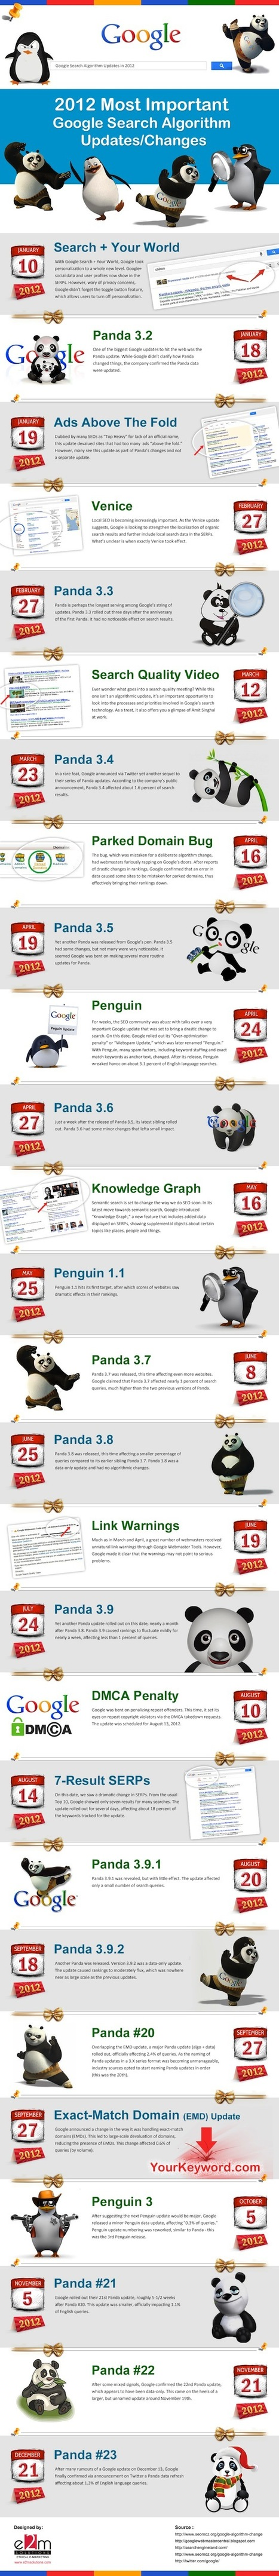 infographie-google-seo.jpeg (550x5078 pixels) | Les infographies ! | Scoop.it